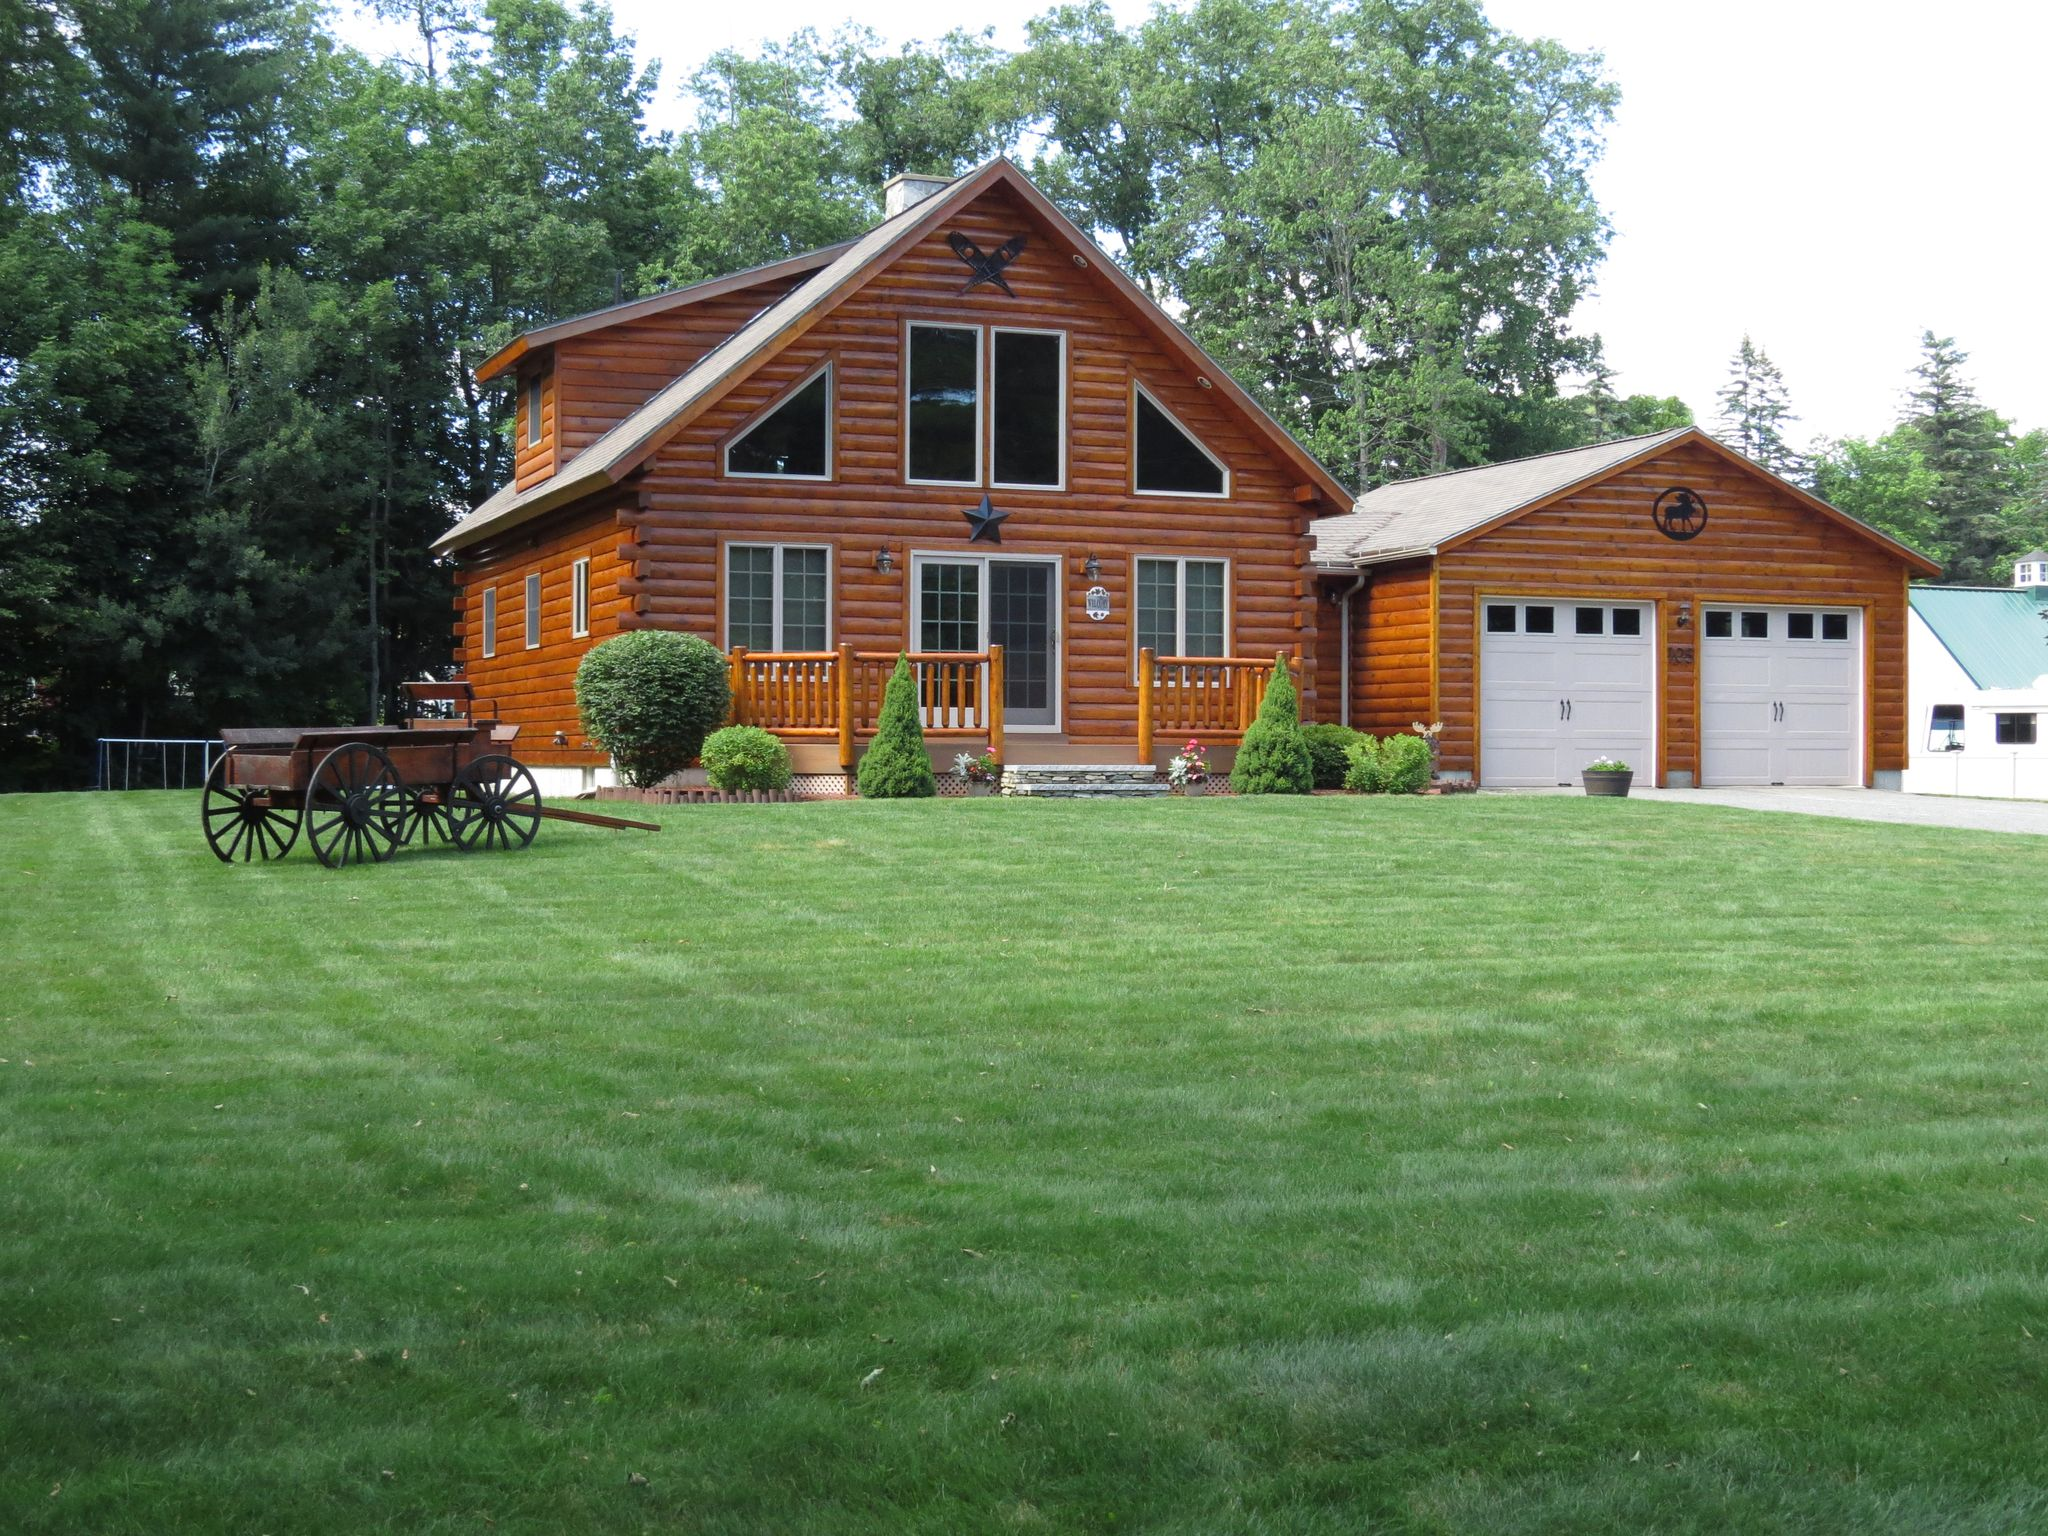 cabins designs homes our sale pictures nh home driftwood craftsmanstyle coventry may log design model in vary ourdesigns cabin for series actual the from